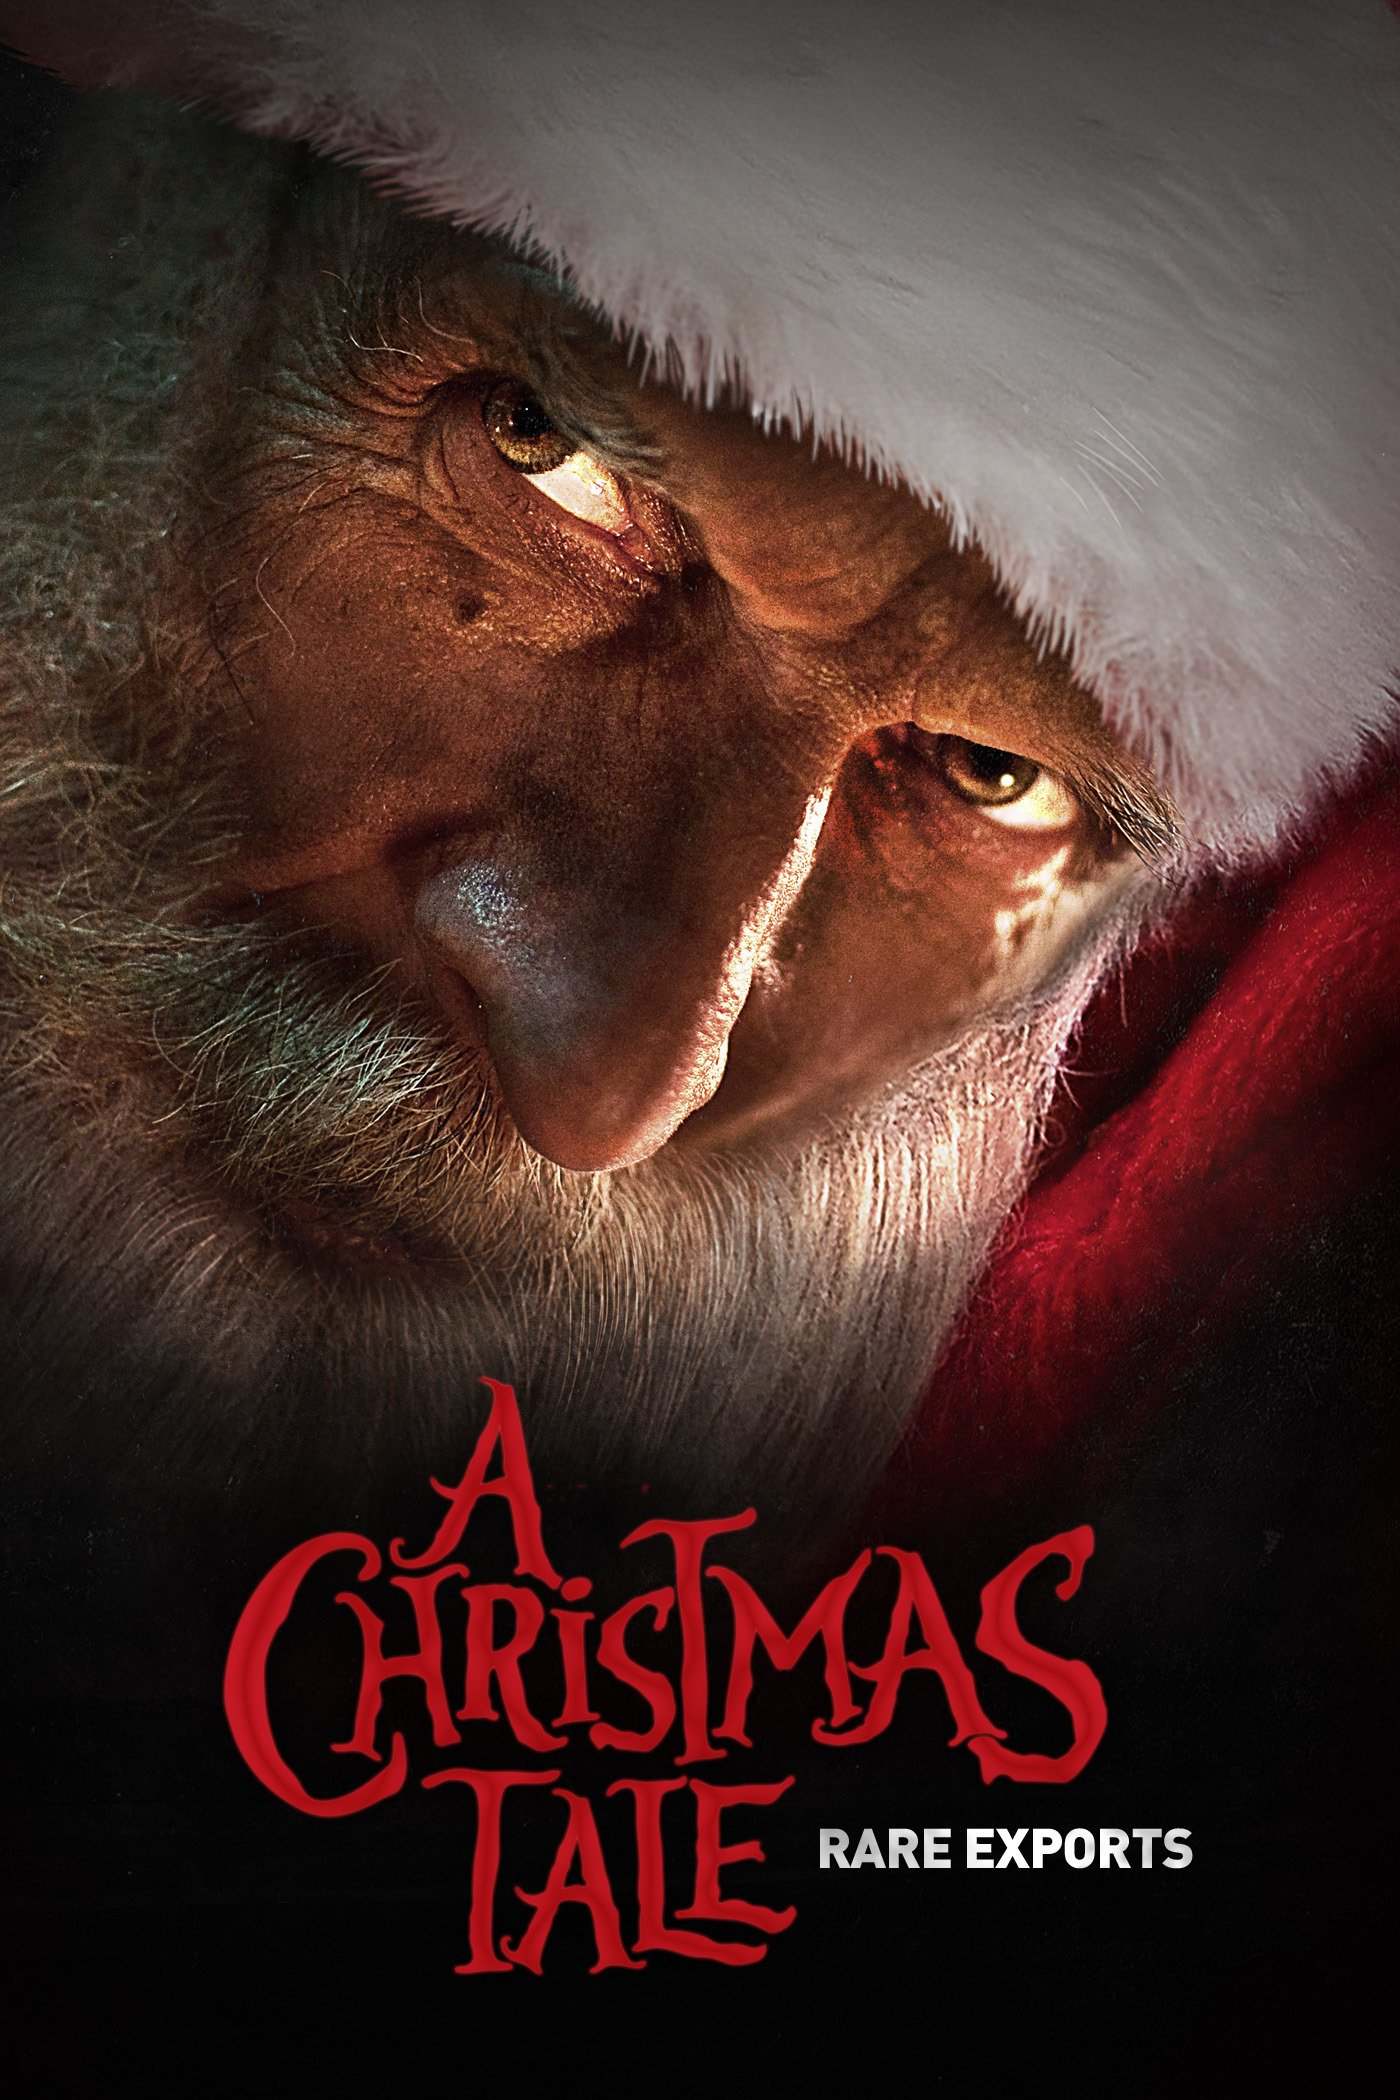 Amazon.de: A CHRISTMAS TALE - Rare Exports ansehen | Prime Video